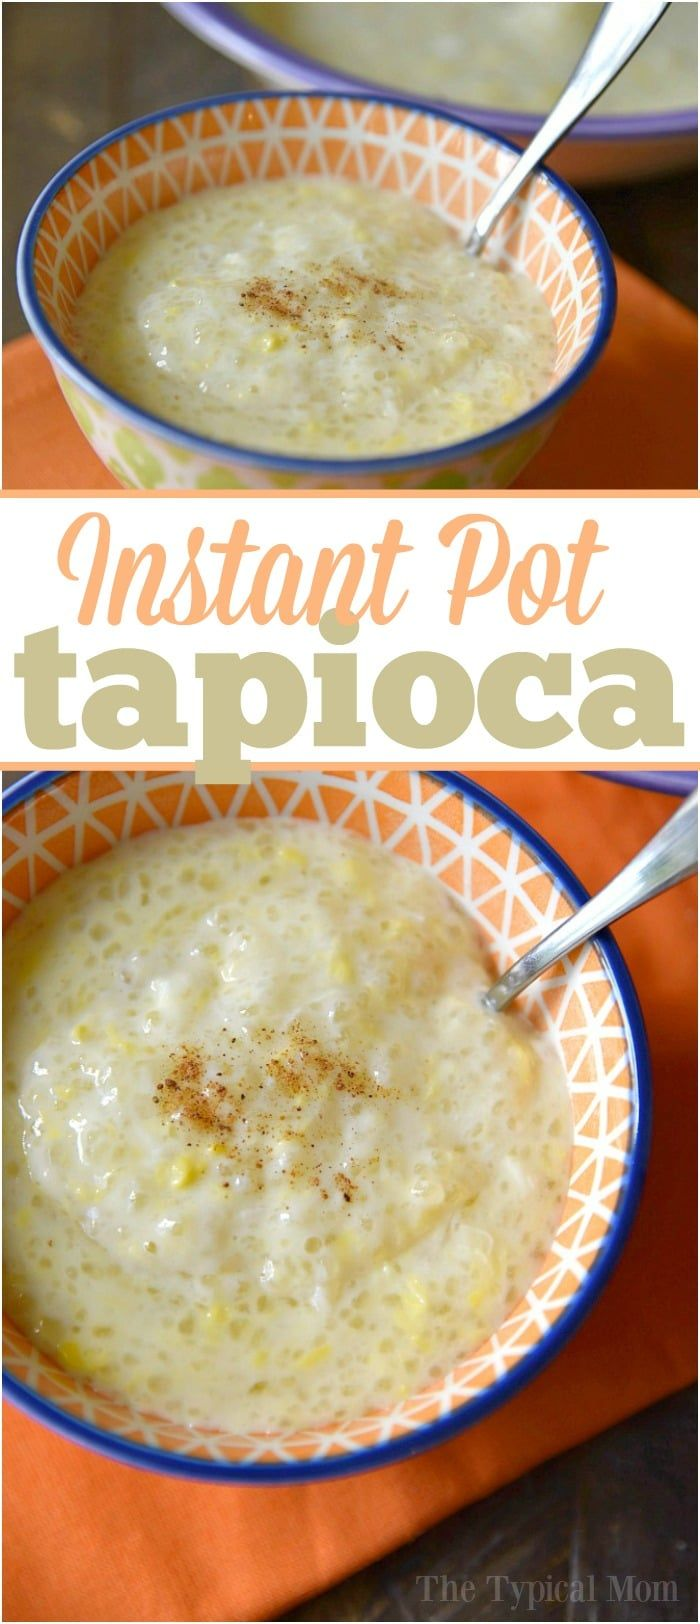 Easy Instant Pot tapioca pudding recipe that takes less than 10 minutes and requires less work than on the stovetop. Great pressure cooker tapioca pudding. via @thetypicalmom